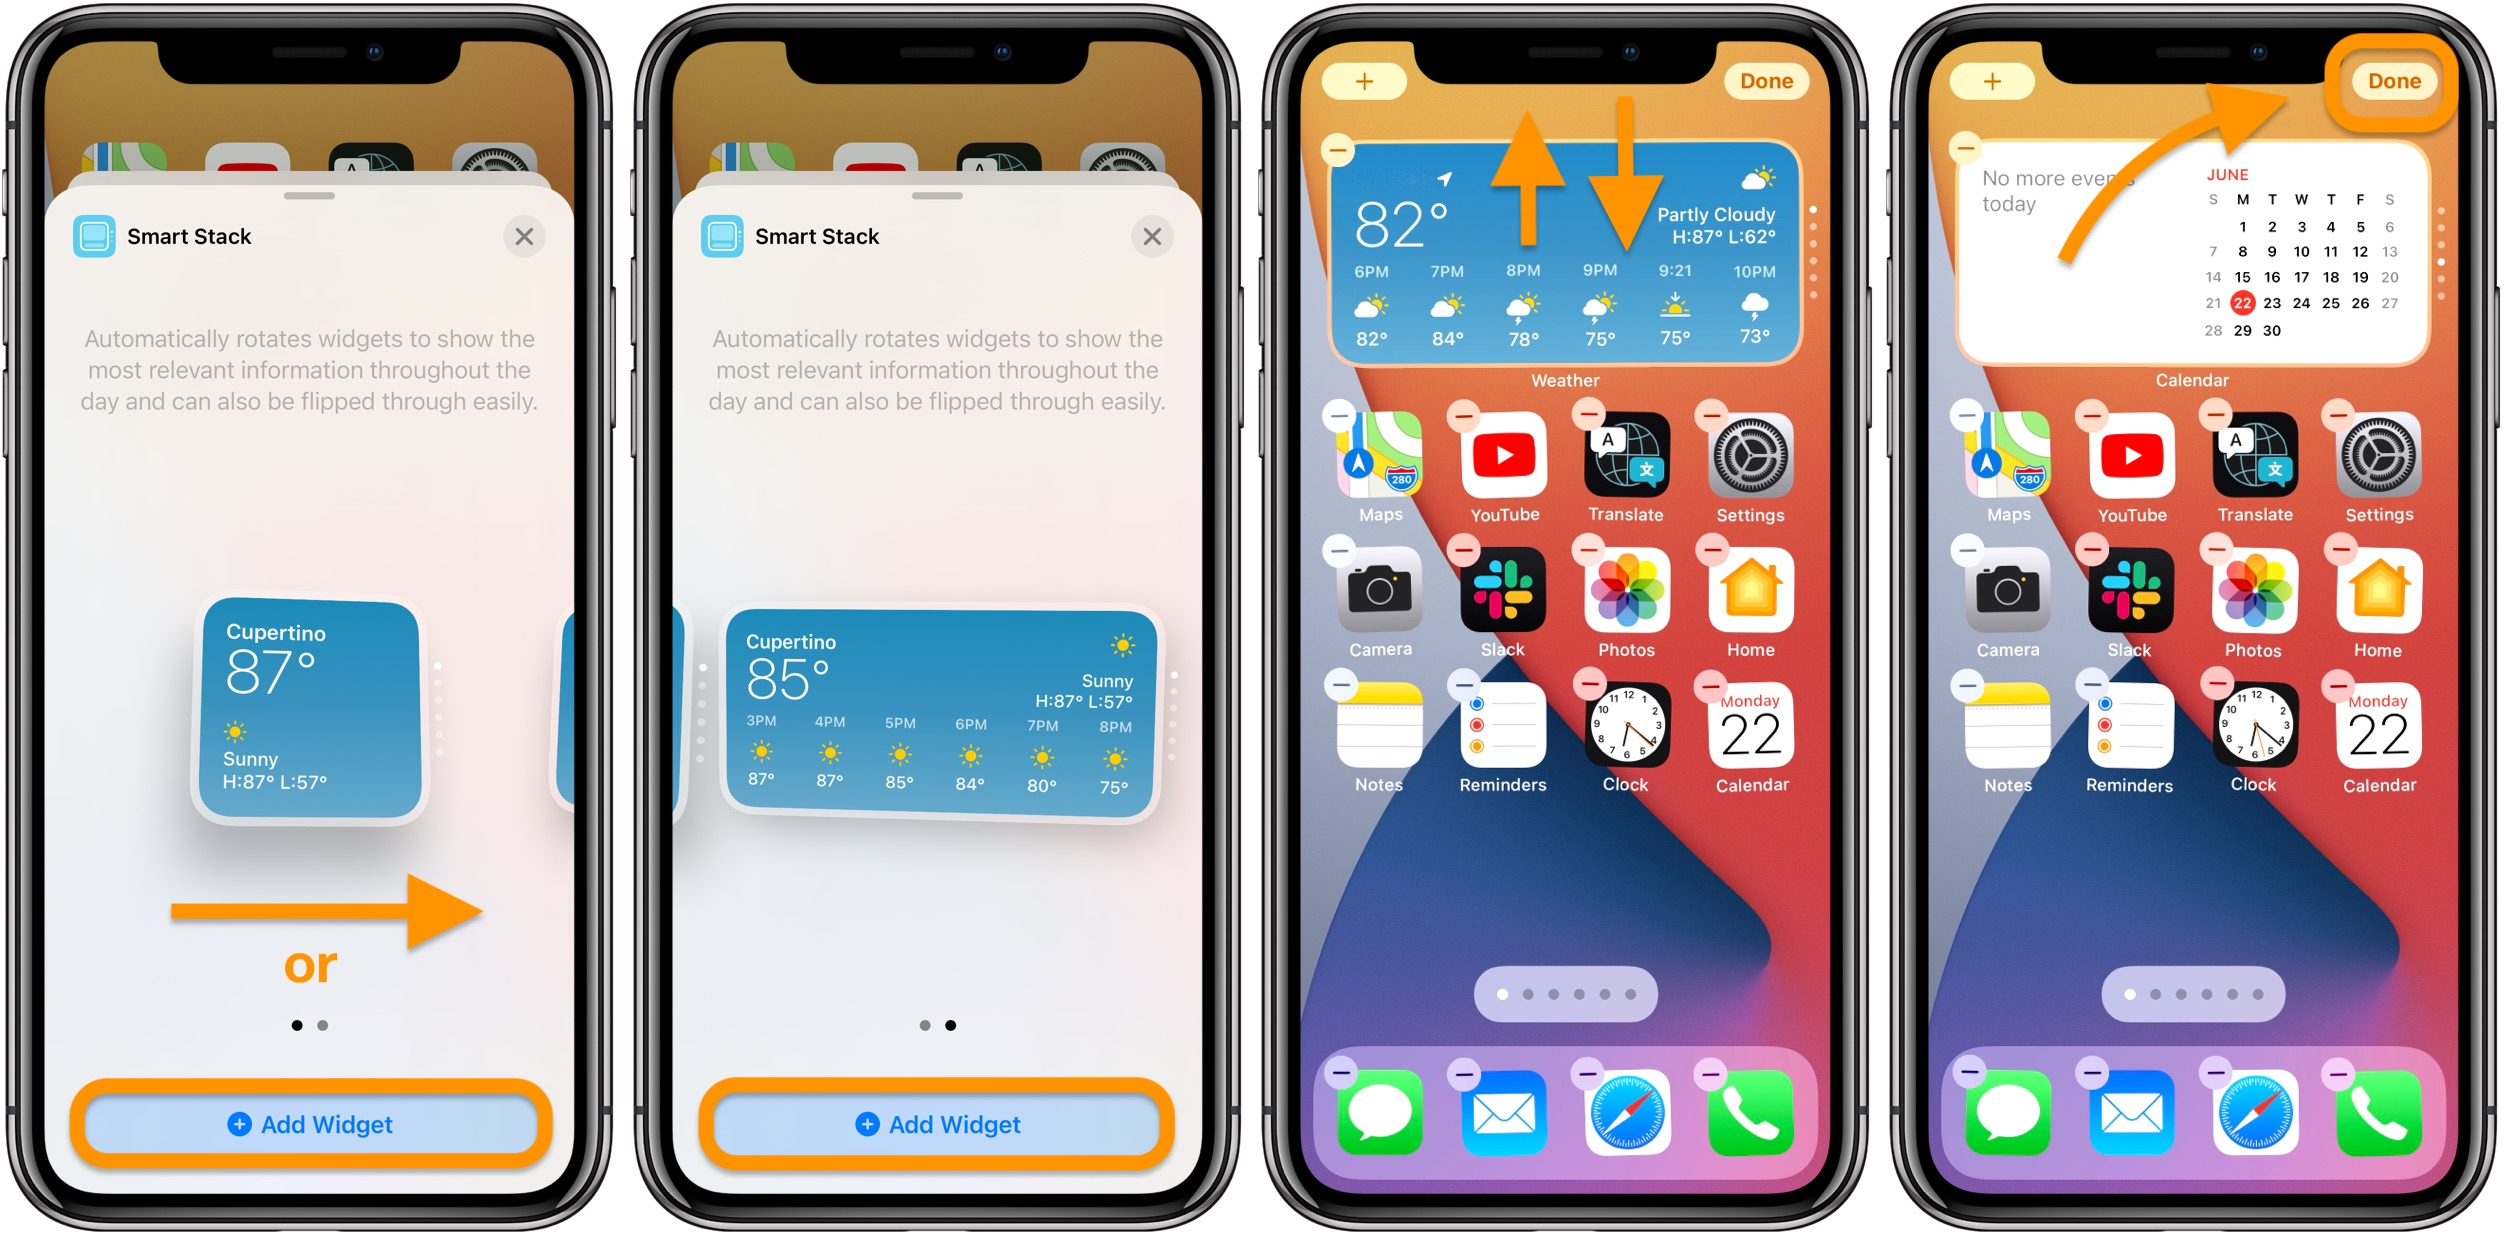 How To Use Iphone Home Screen Widgets In Ios 14 9to5mac